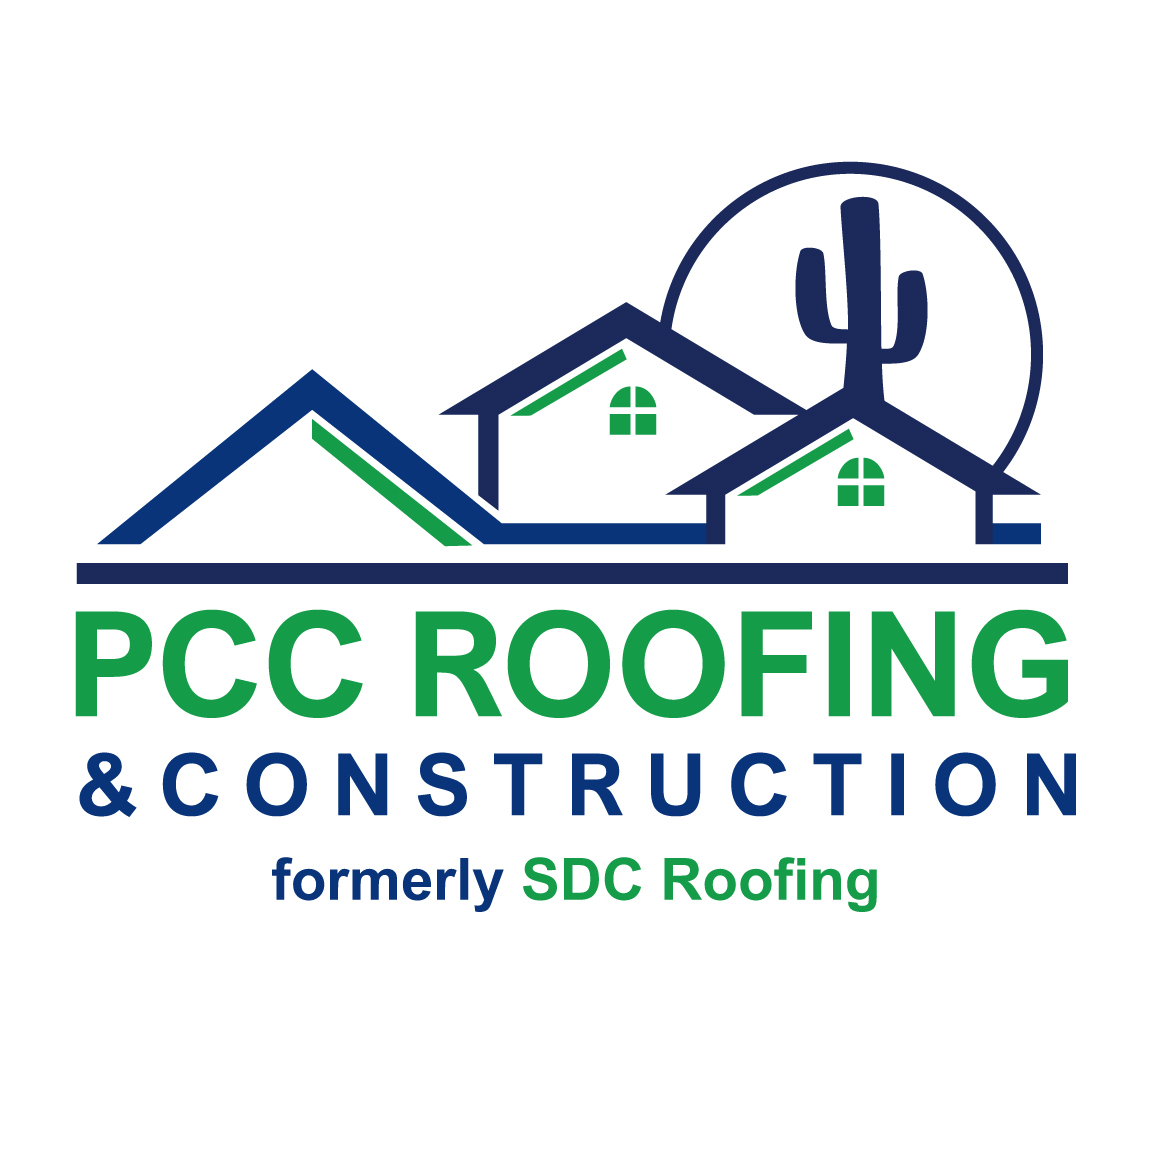 Sdc Roofing Announces Corporate Name Change To Pcc Roofing Construction Changing Name To Reflect Broader General Construction Commitment Newswire